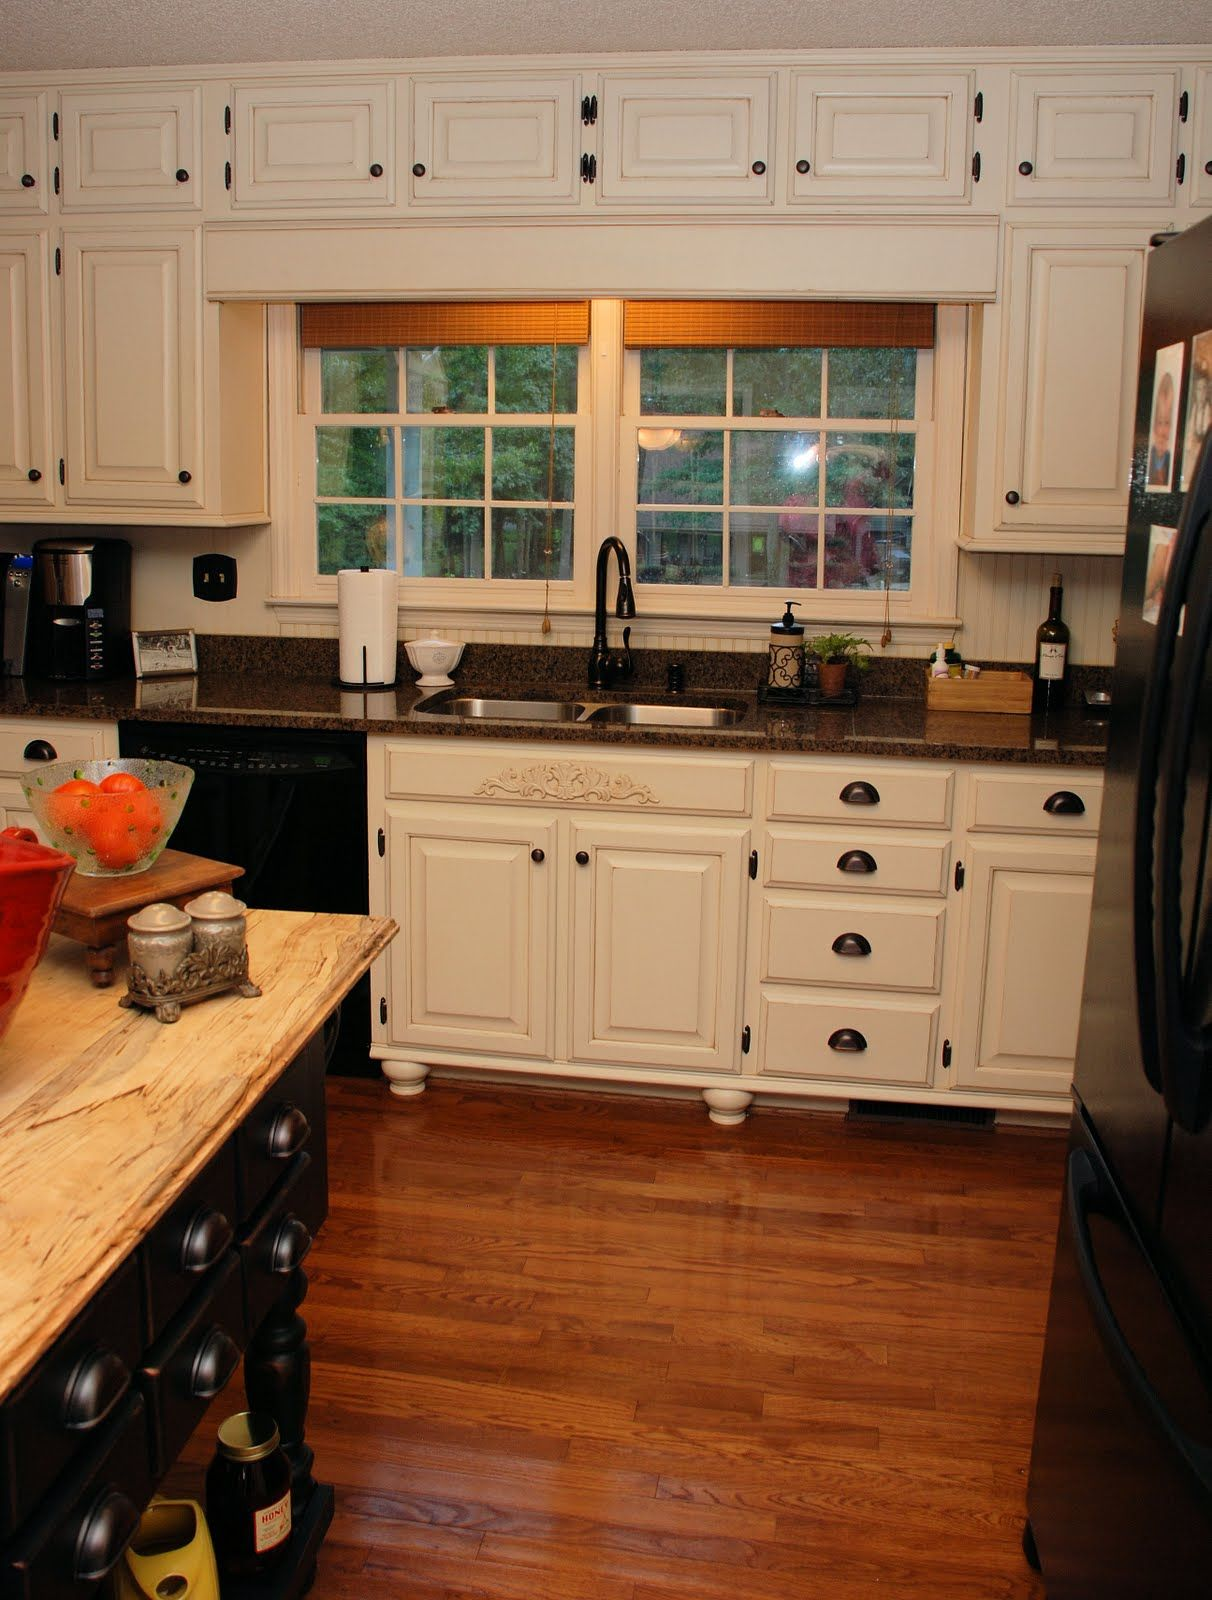 antique white kitchen cabinets with black appliances off white kitchen cabinets 17 Best images about painted kitchen cabinets on Pinterest Antique white kitchens Cabinets and